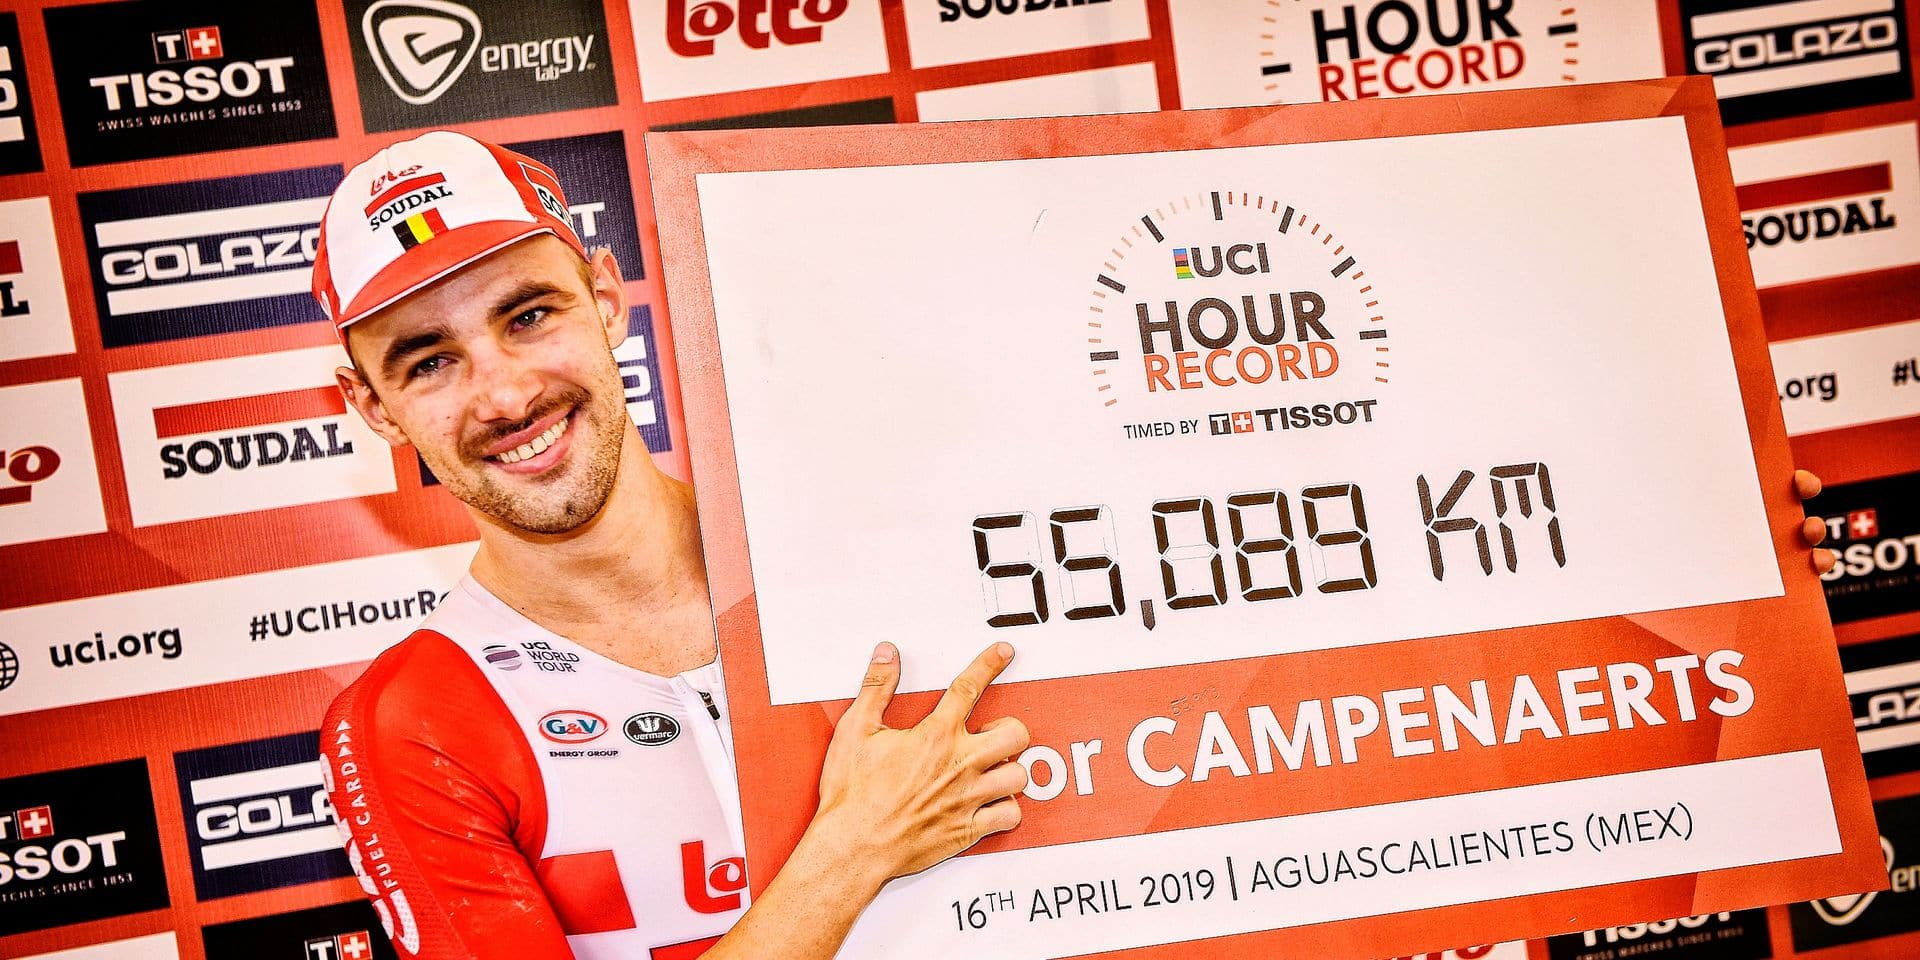 Belgian Victor Campenaerts of Lotto Soudal celebrates after succeeding in his attempt to beat the UCI World Hour Record cycling at the Velodromo Bicentenario in Aguascalientes, Mexico, Tuesday 16 April 2019. YORICK JANSENS